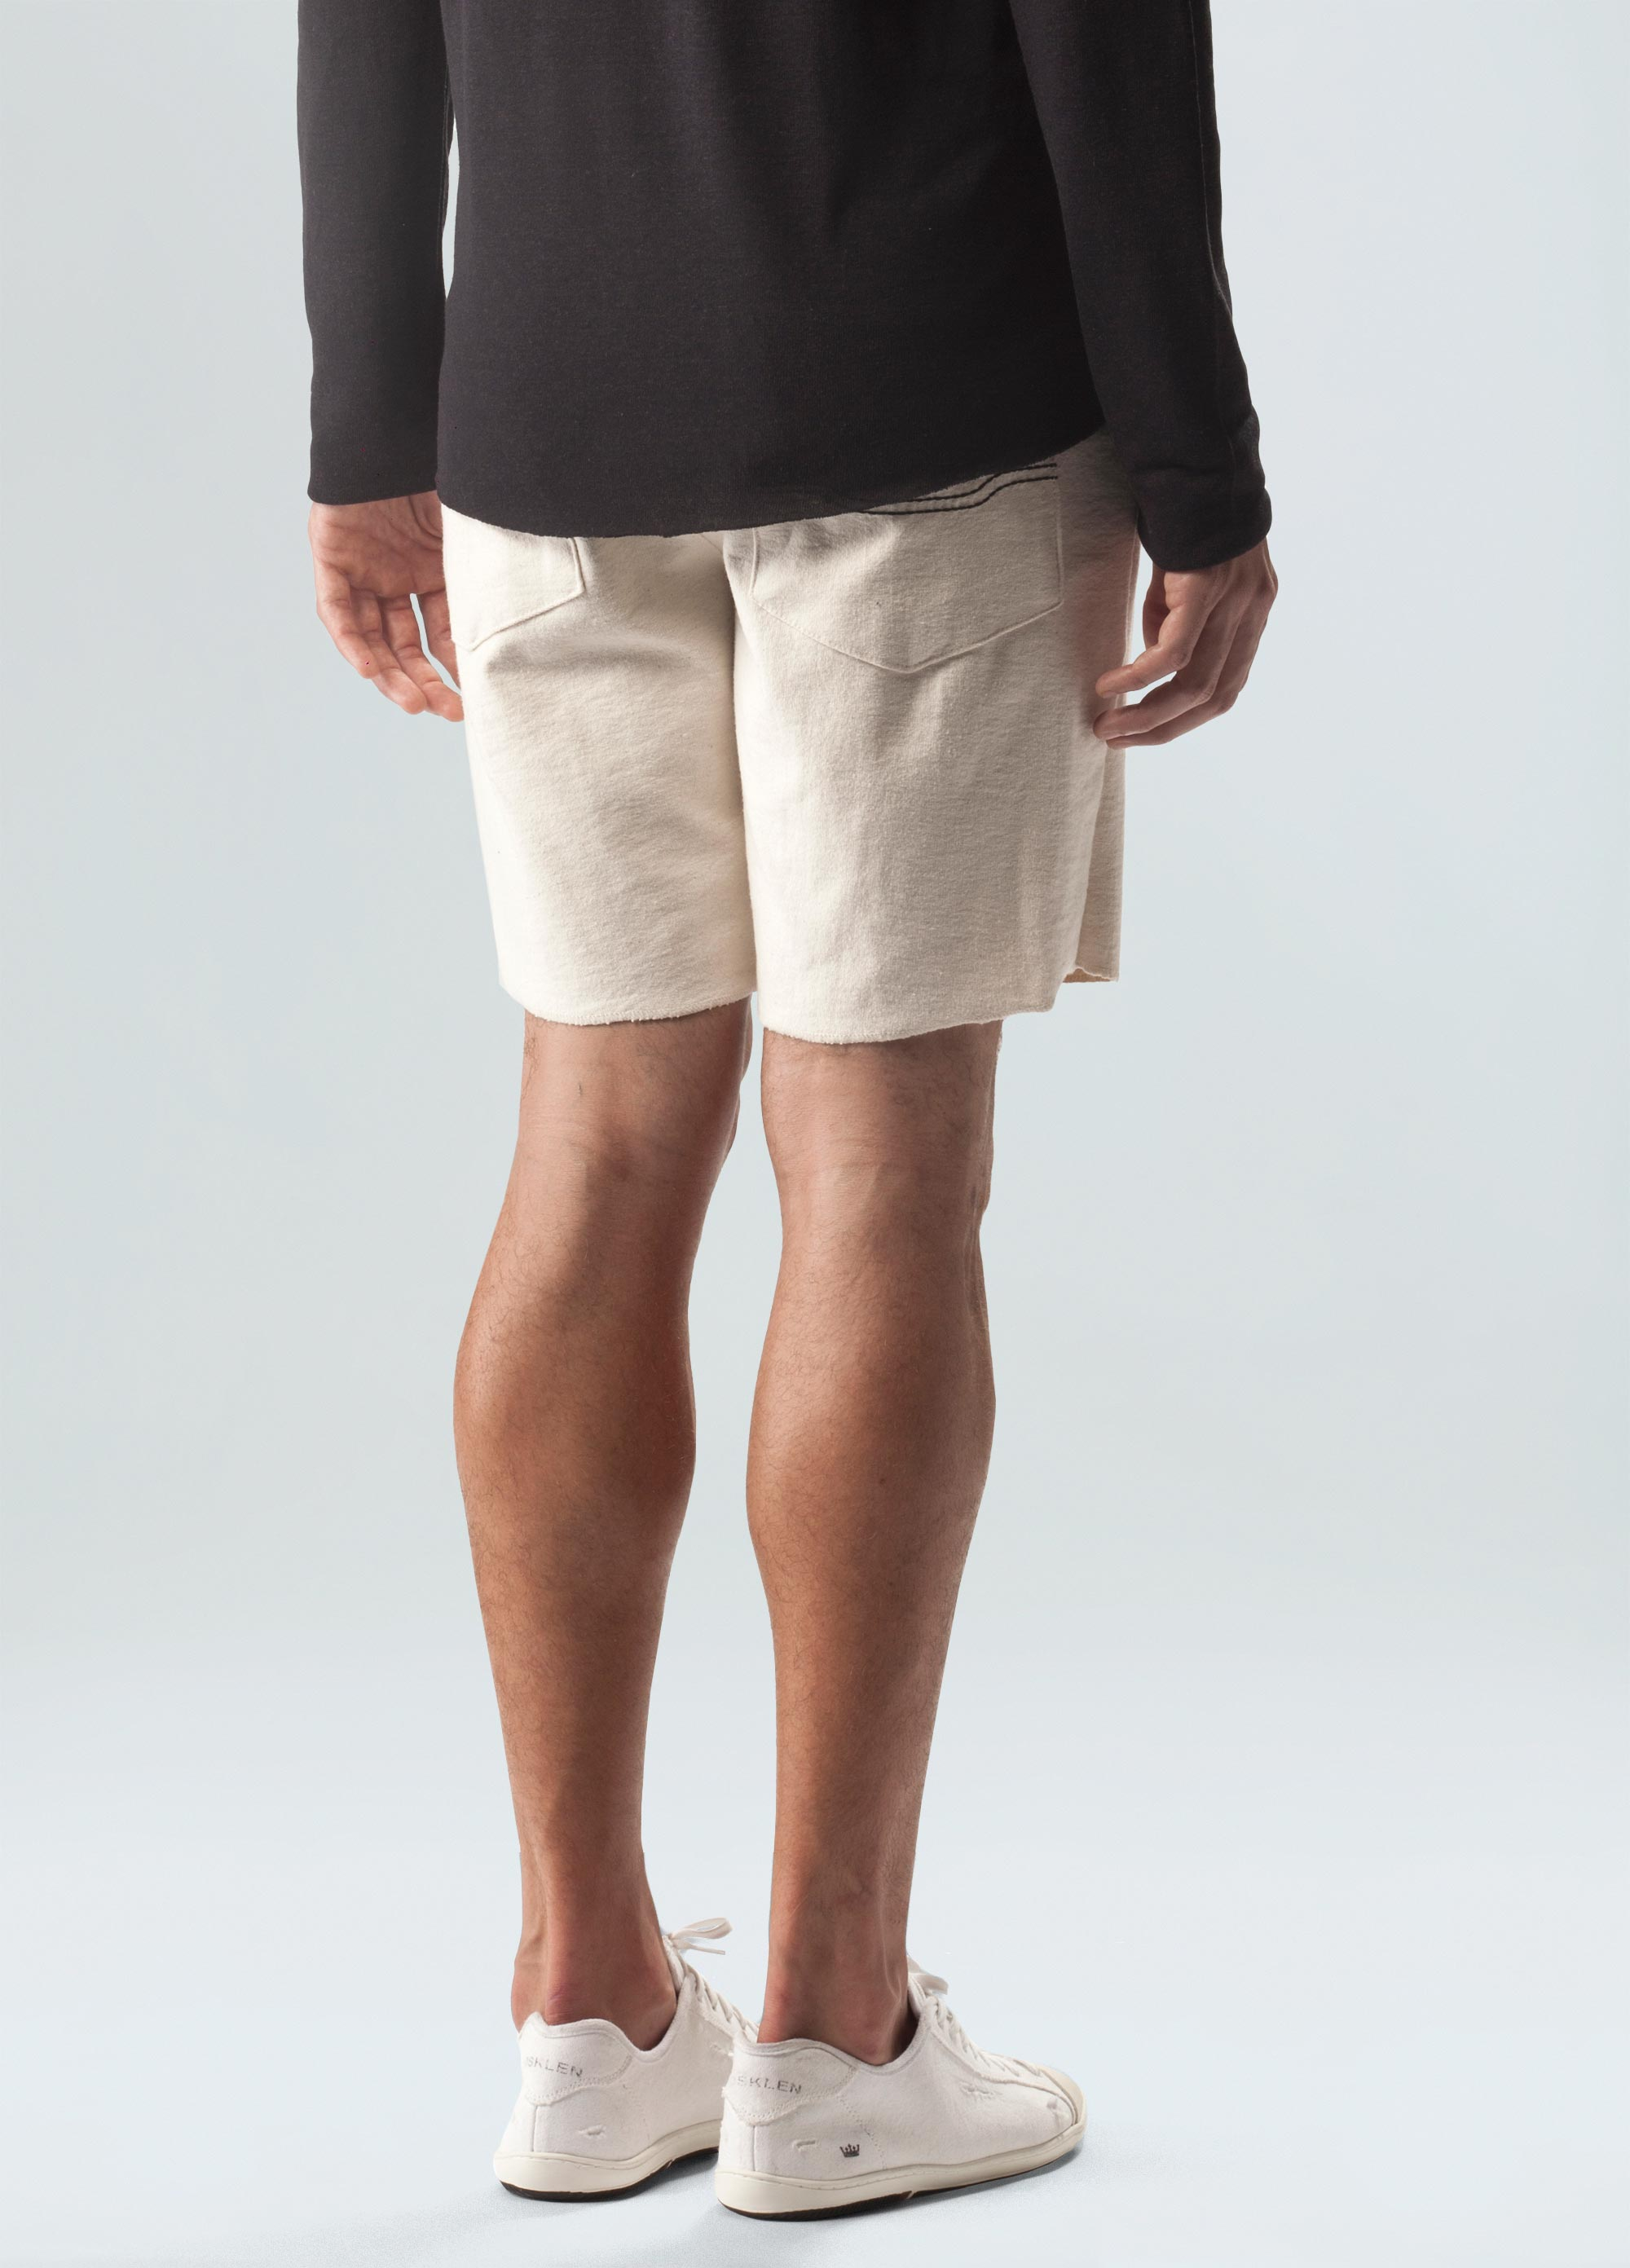 MENS RUSTIC CASUAL SHORTS